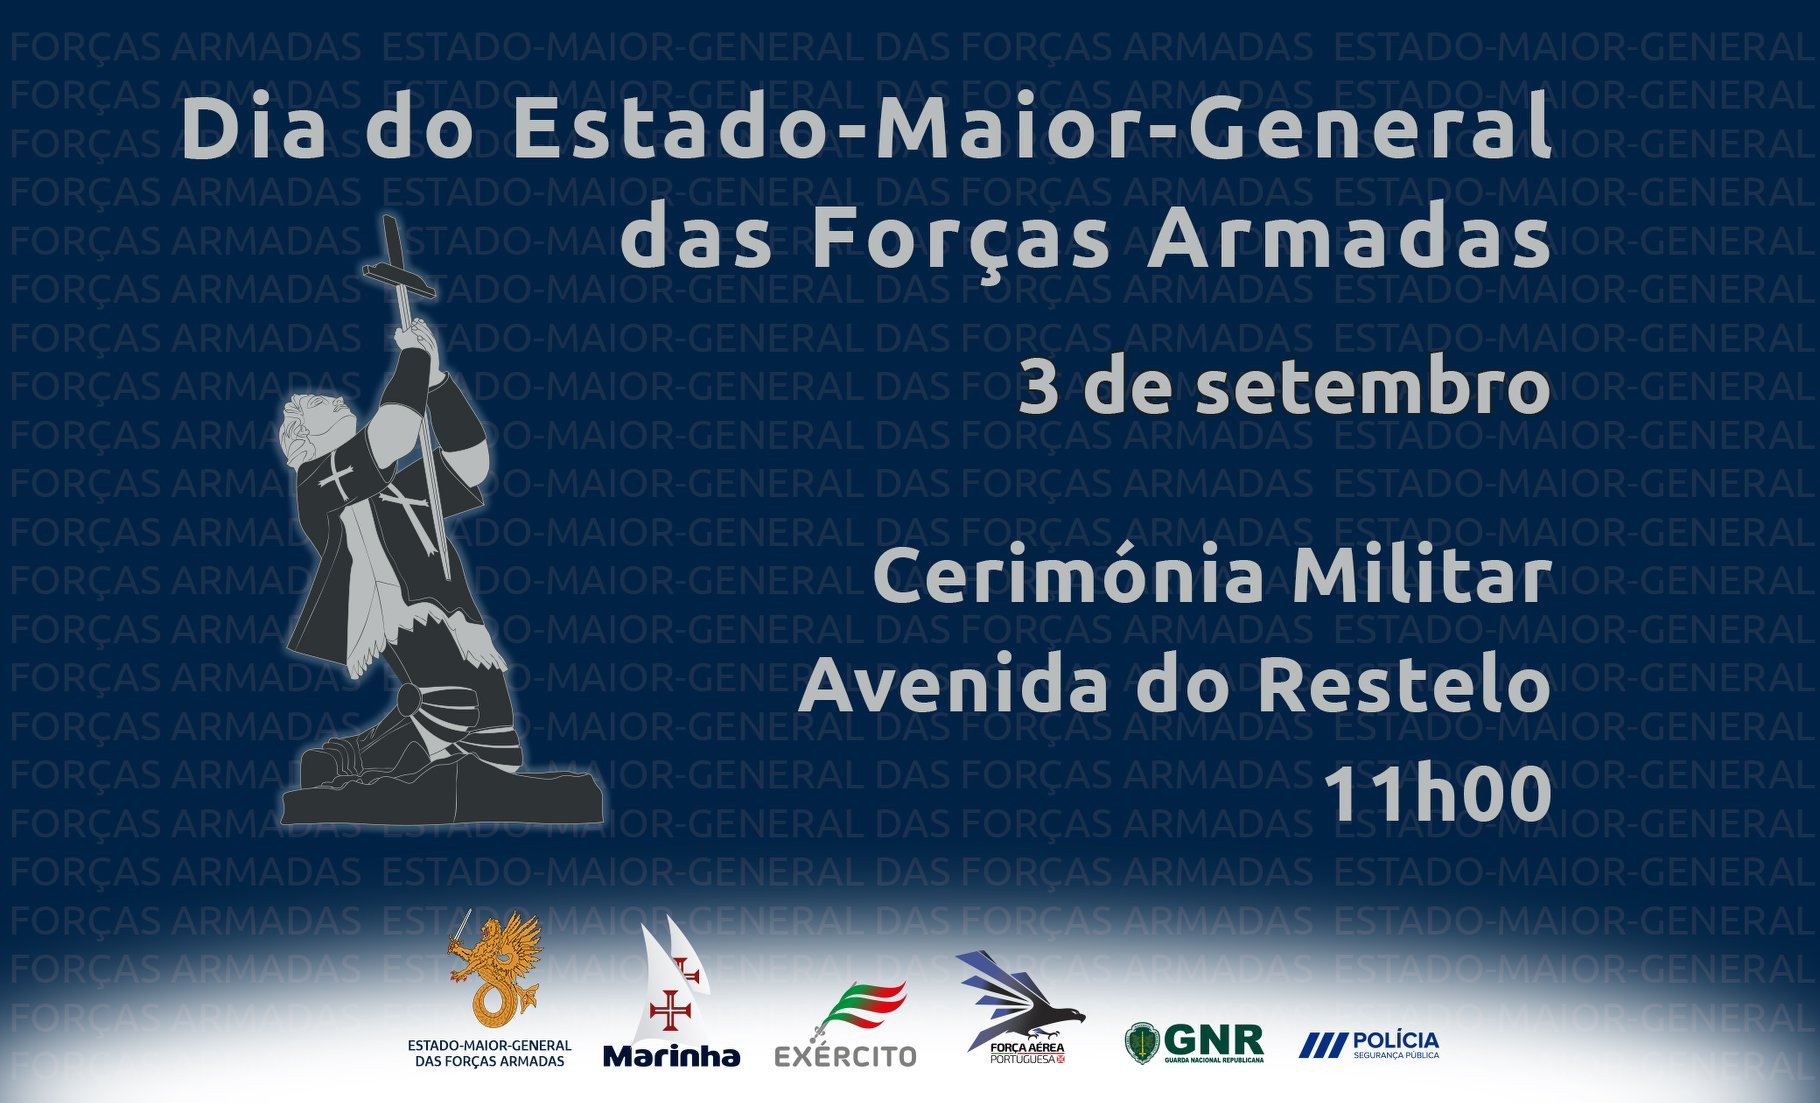 Dia do Estado-Maior-General das Forças Armadas